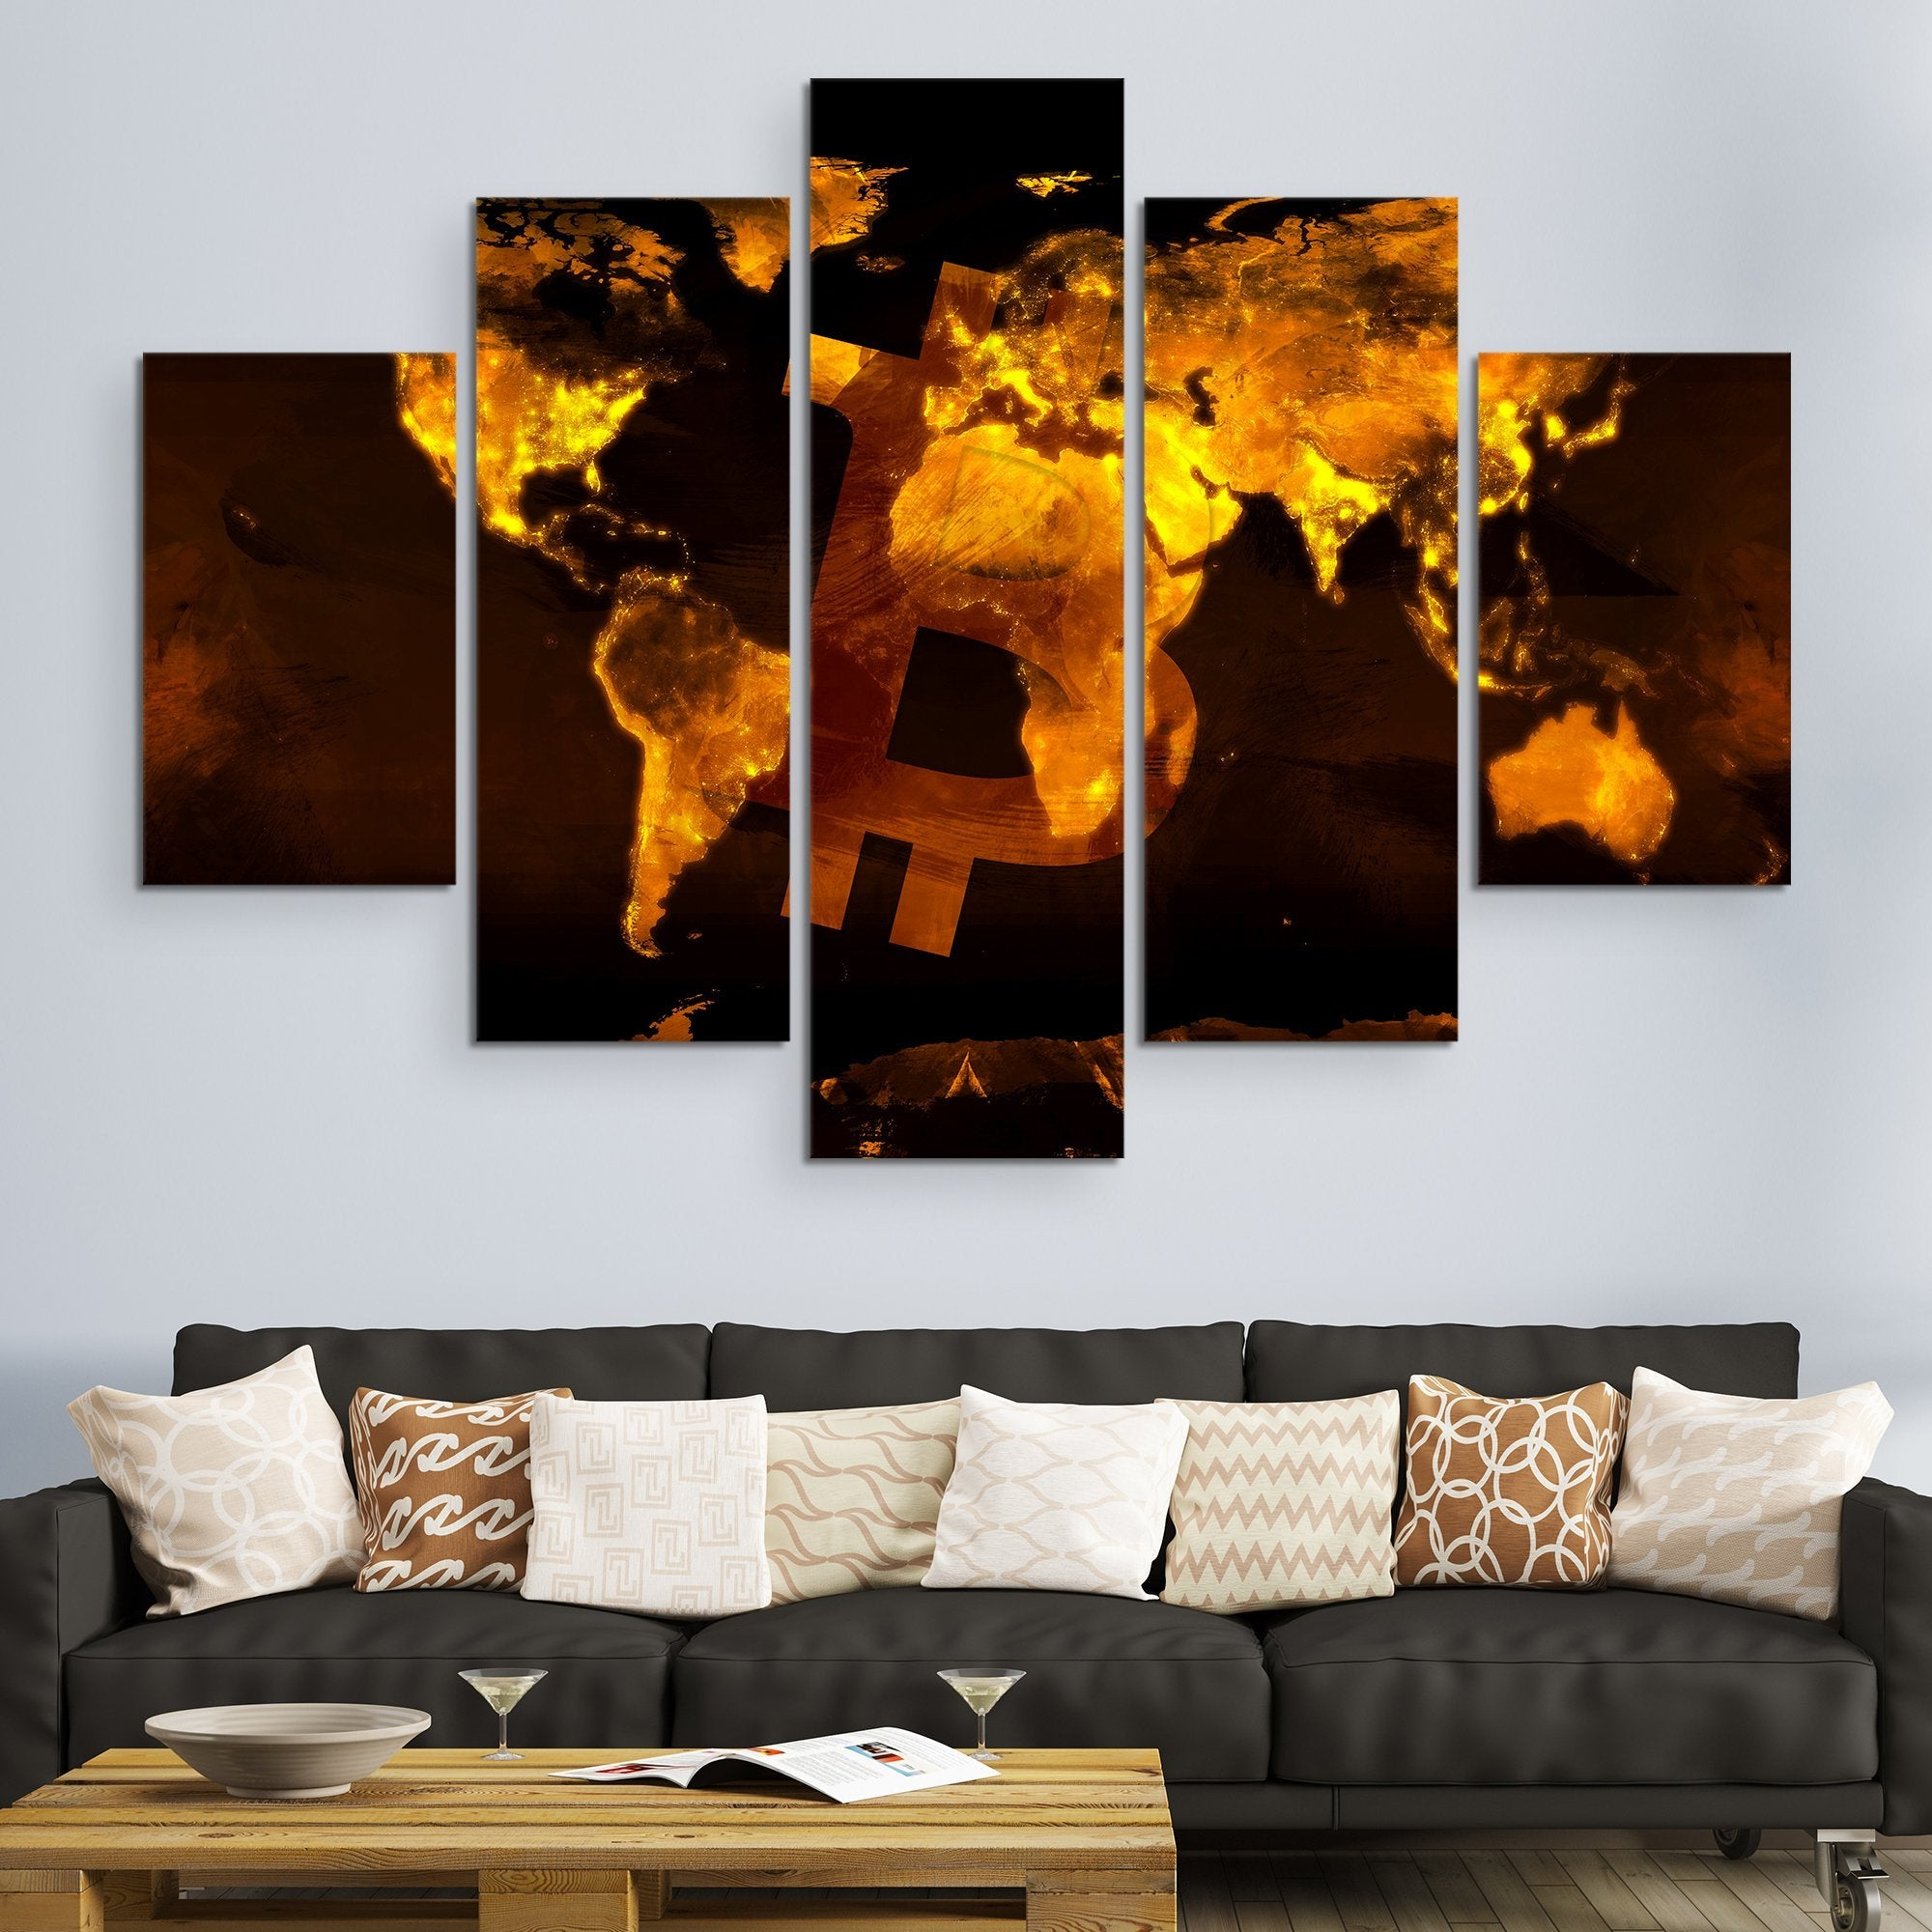 5 piece Bitcoin Black Marble Series wall art